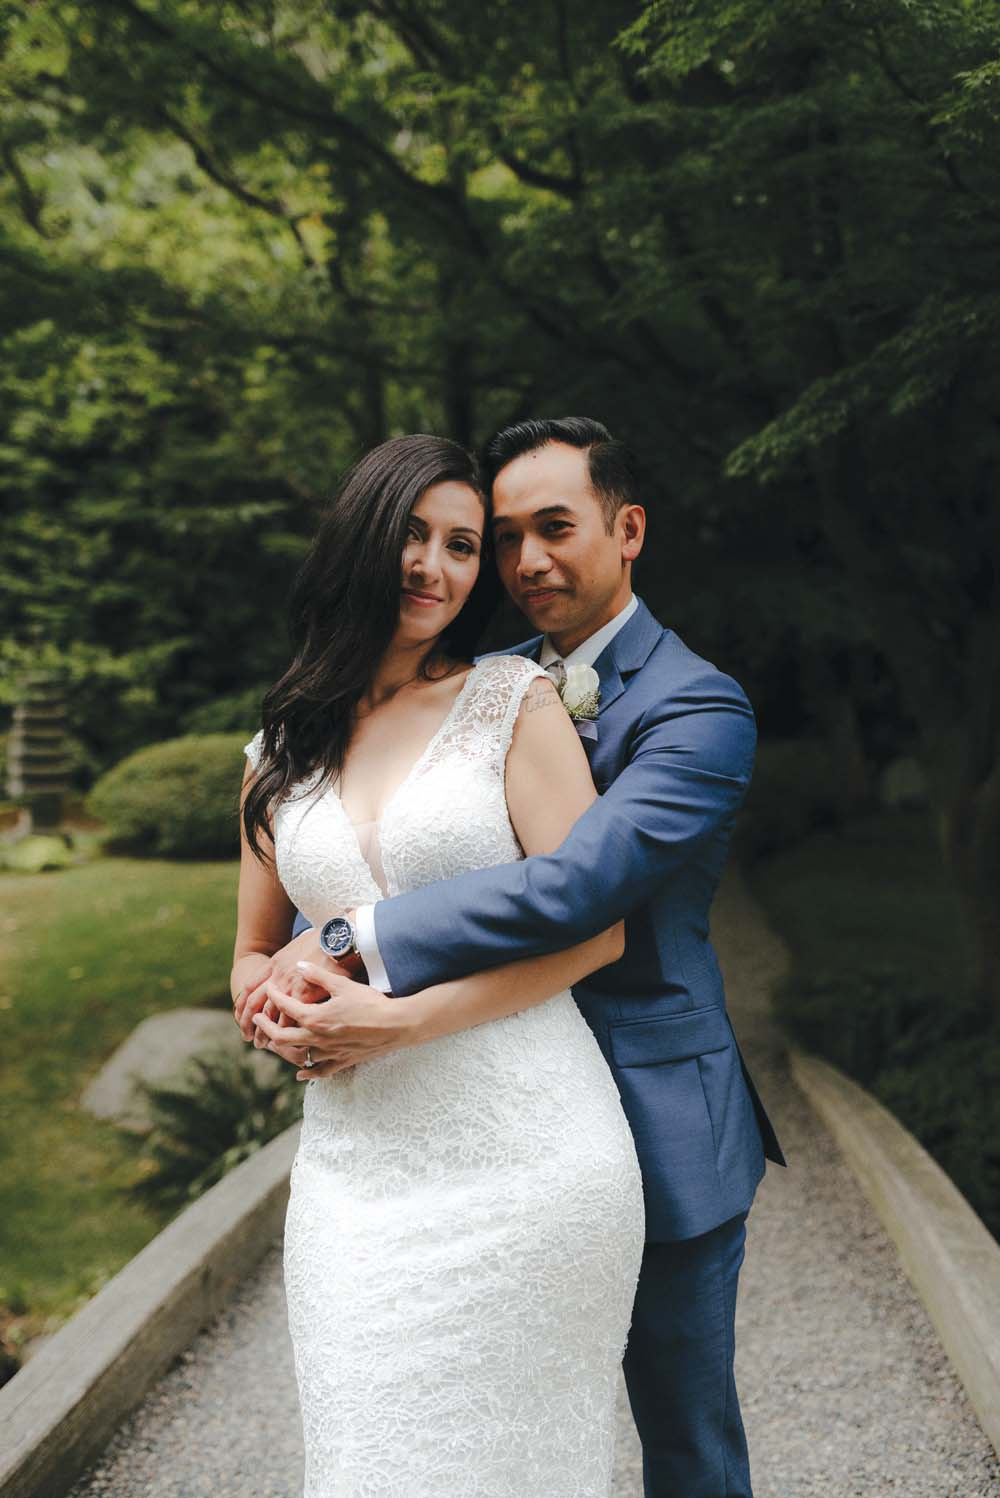 A Multicultural Wedding At The UBC Botanical Garden in Vancouver - bride and groom